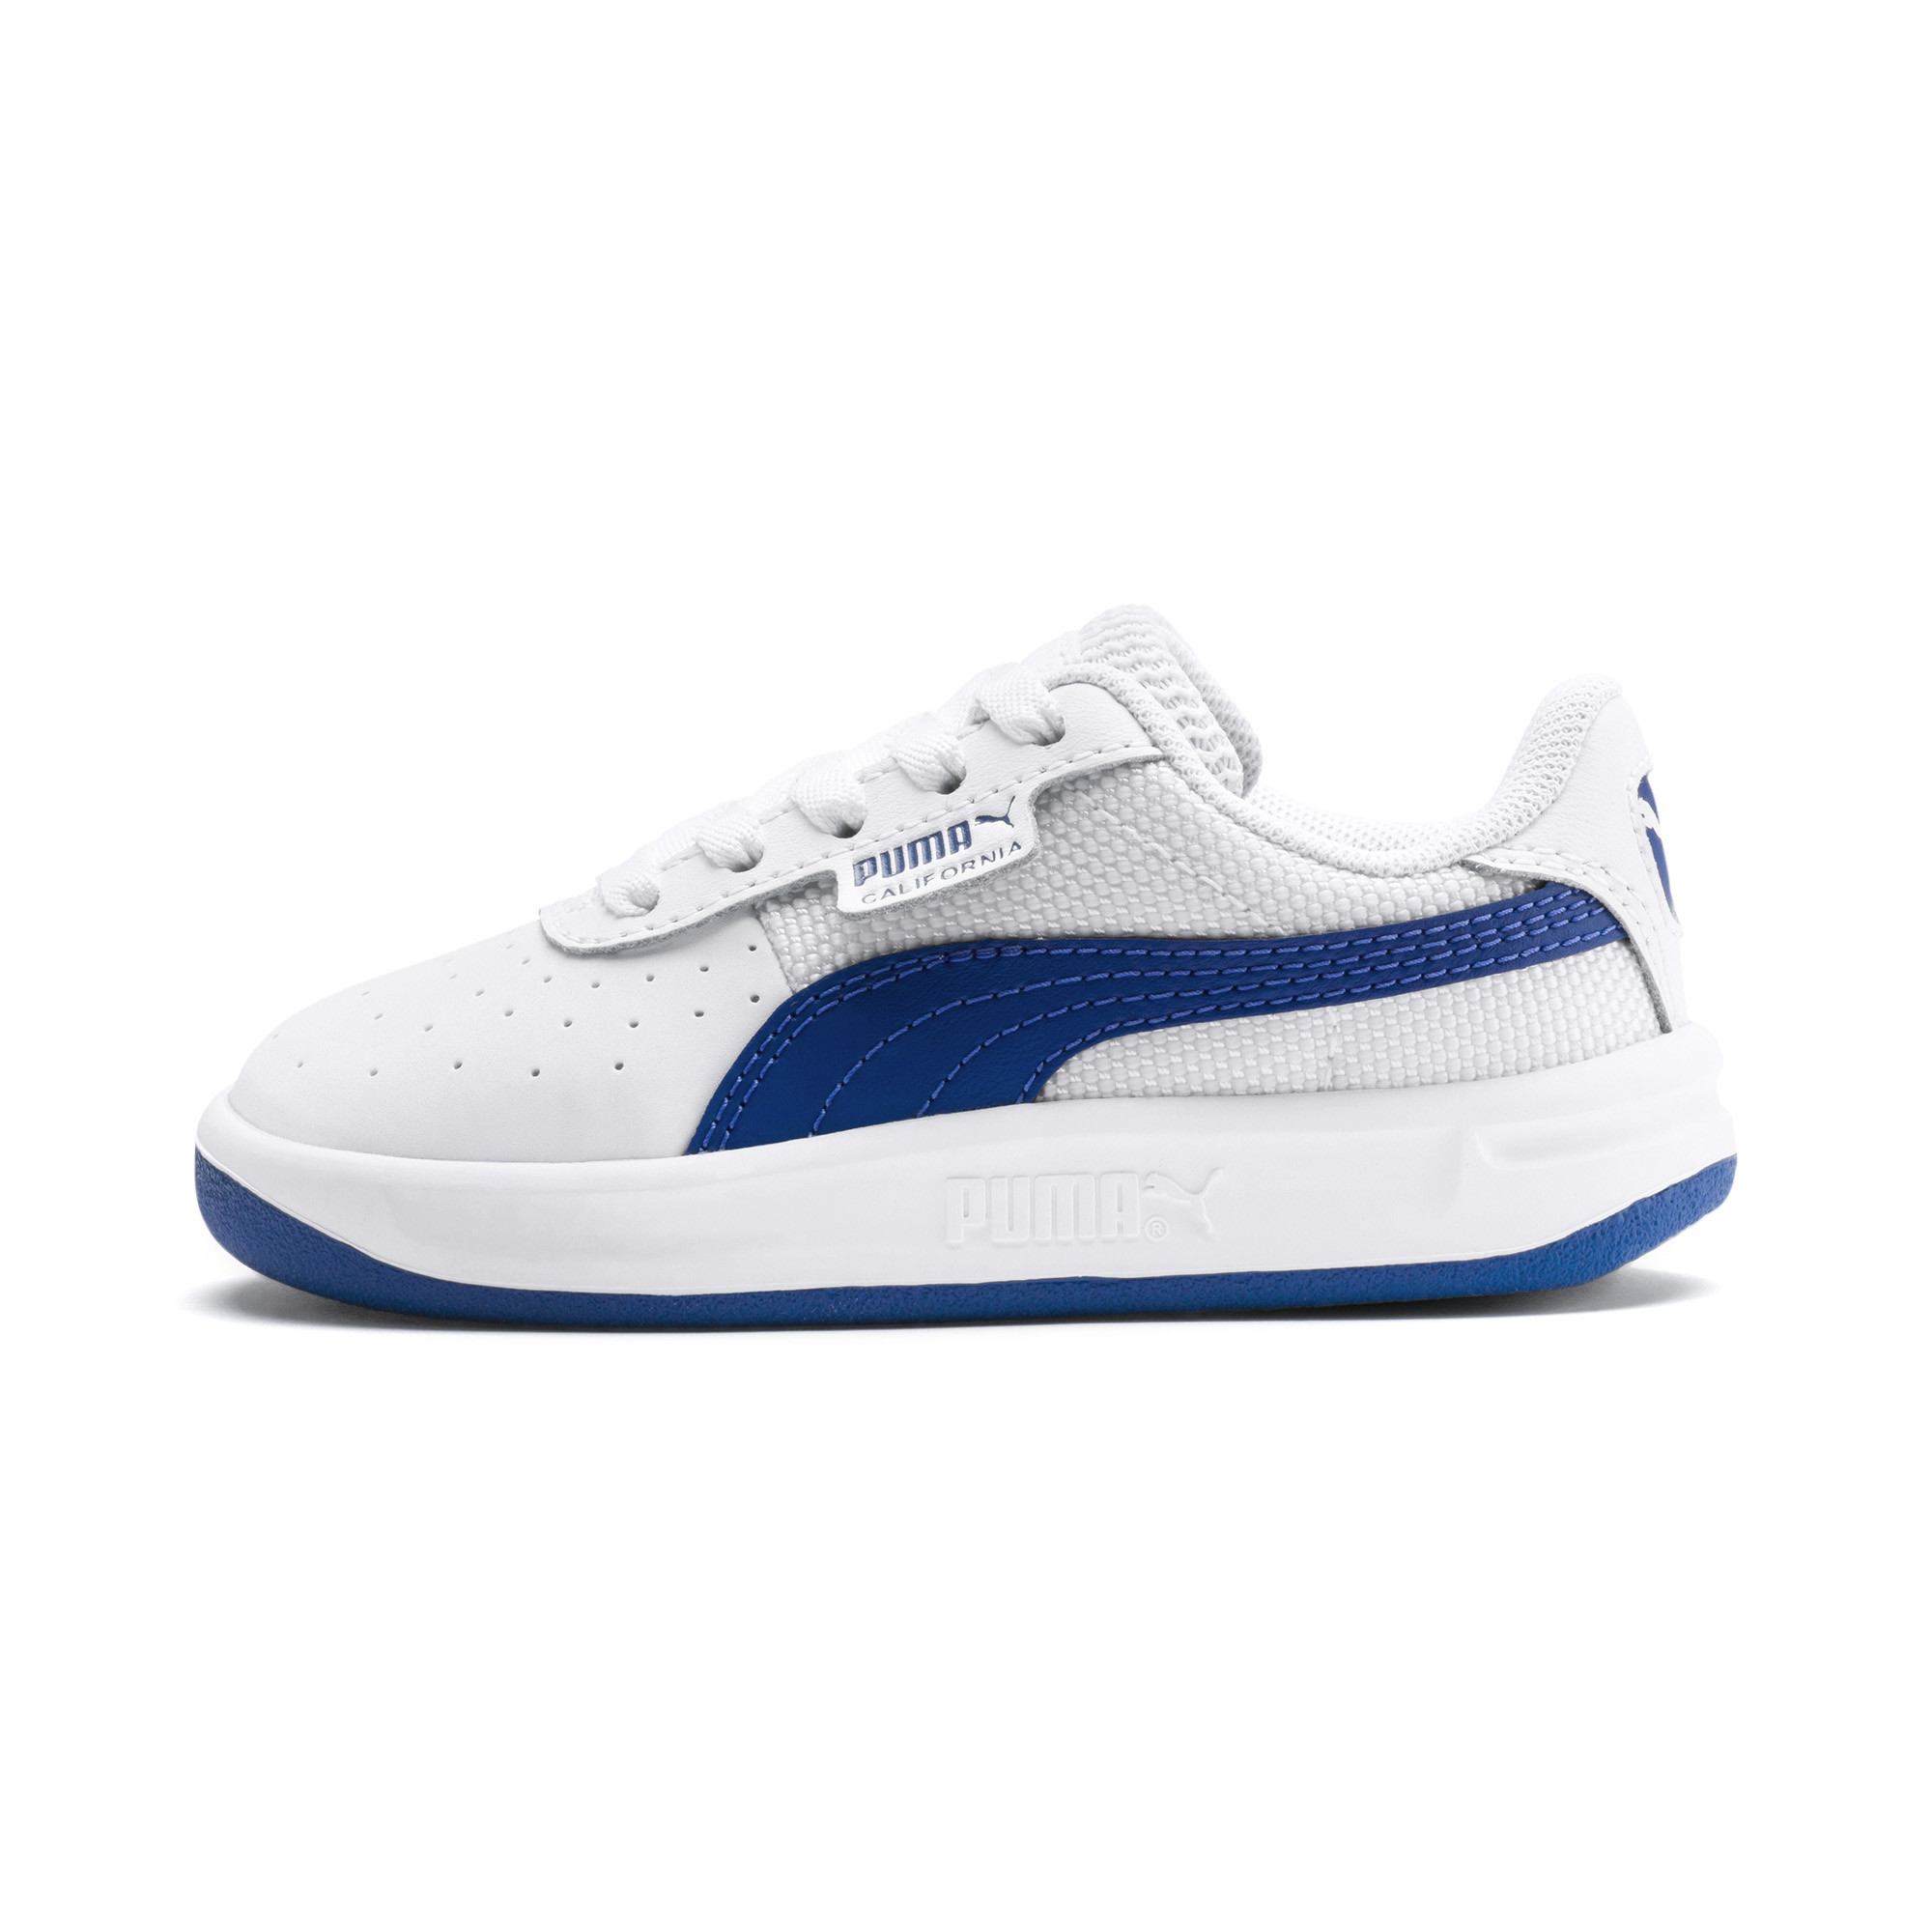 PUMA-California-Toddler-Shoes-Kids-Shoe-Kids thumbnail 4